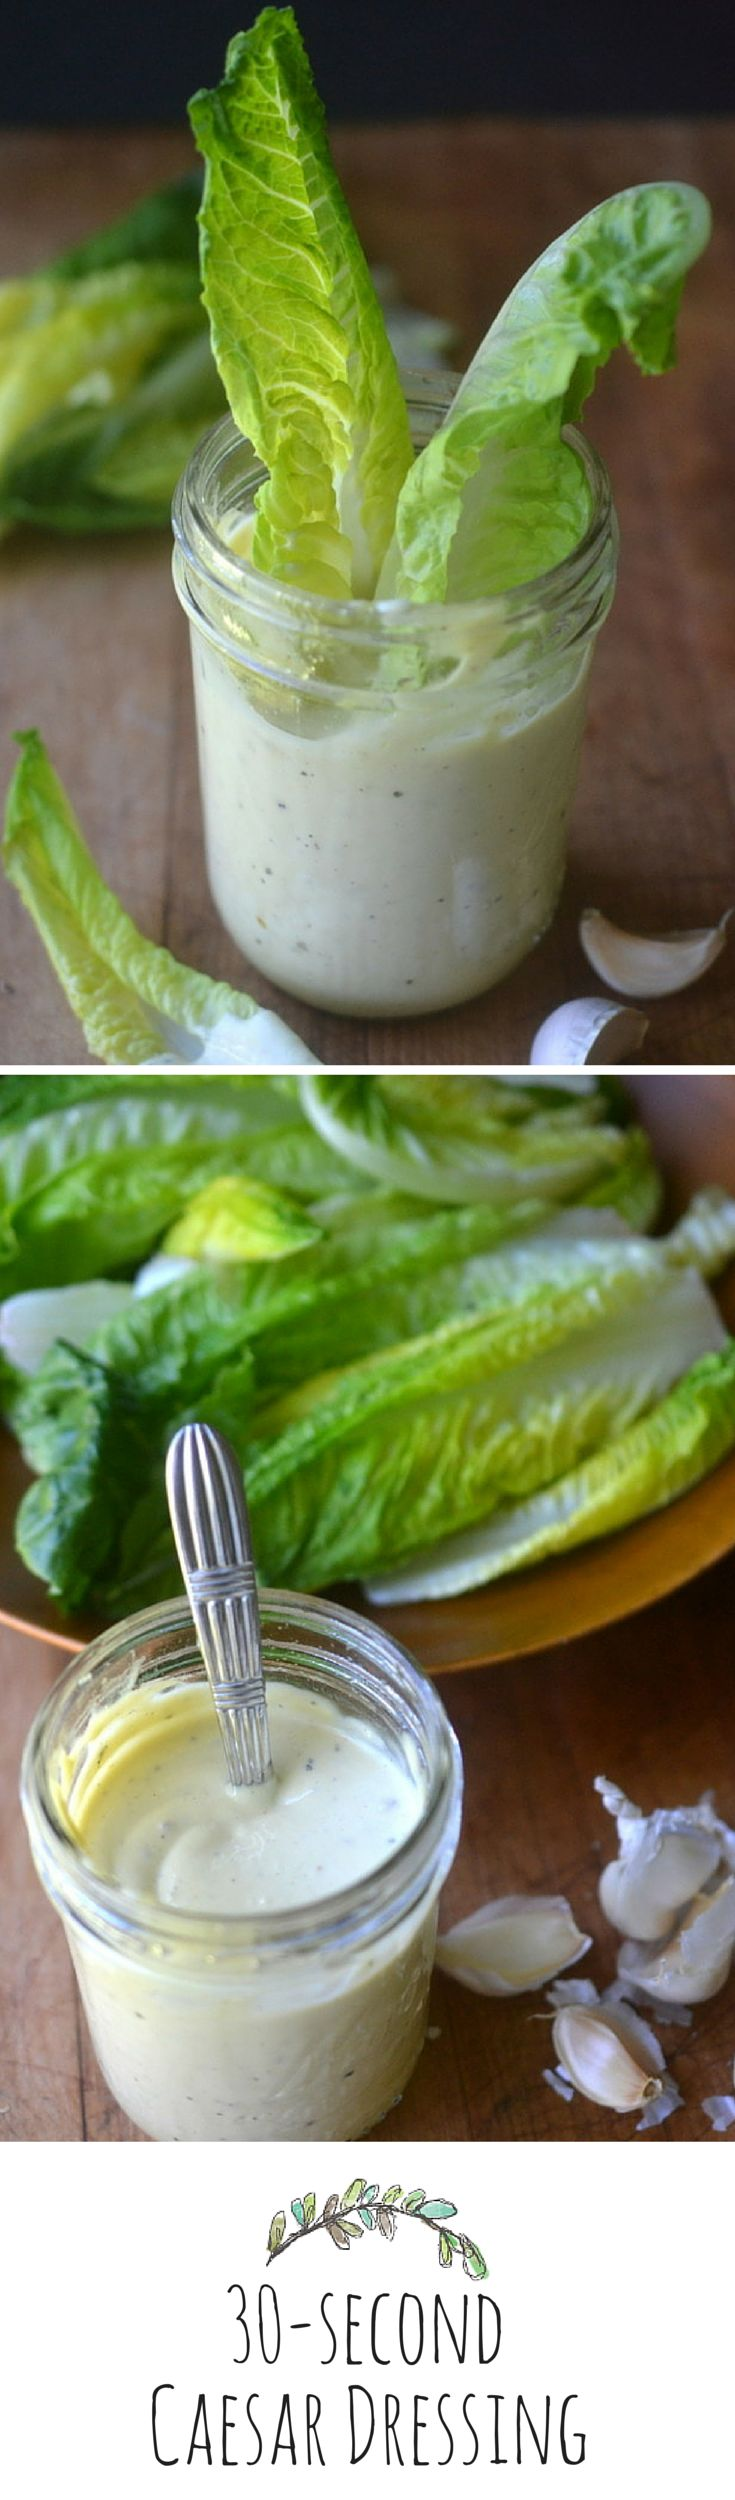 You'll find so many uses for this classic dressing!  Make it fast and easy with an immersion blender!